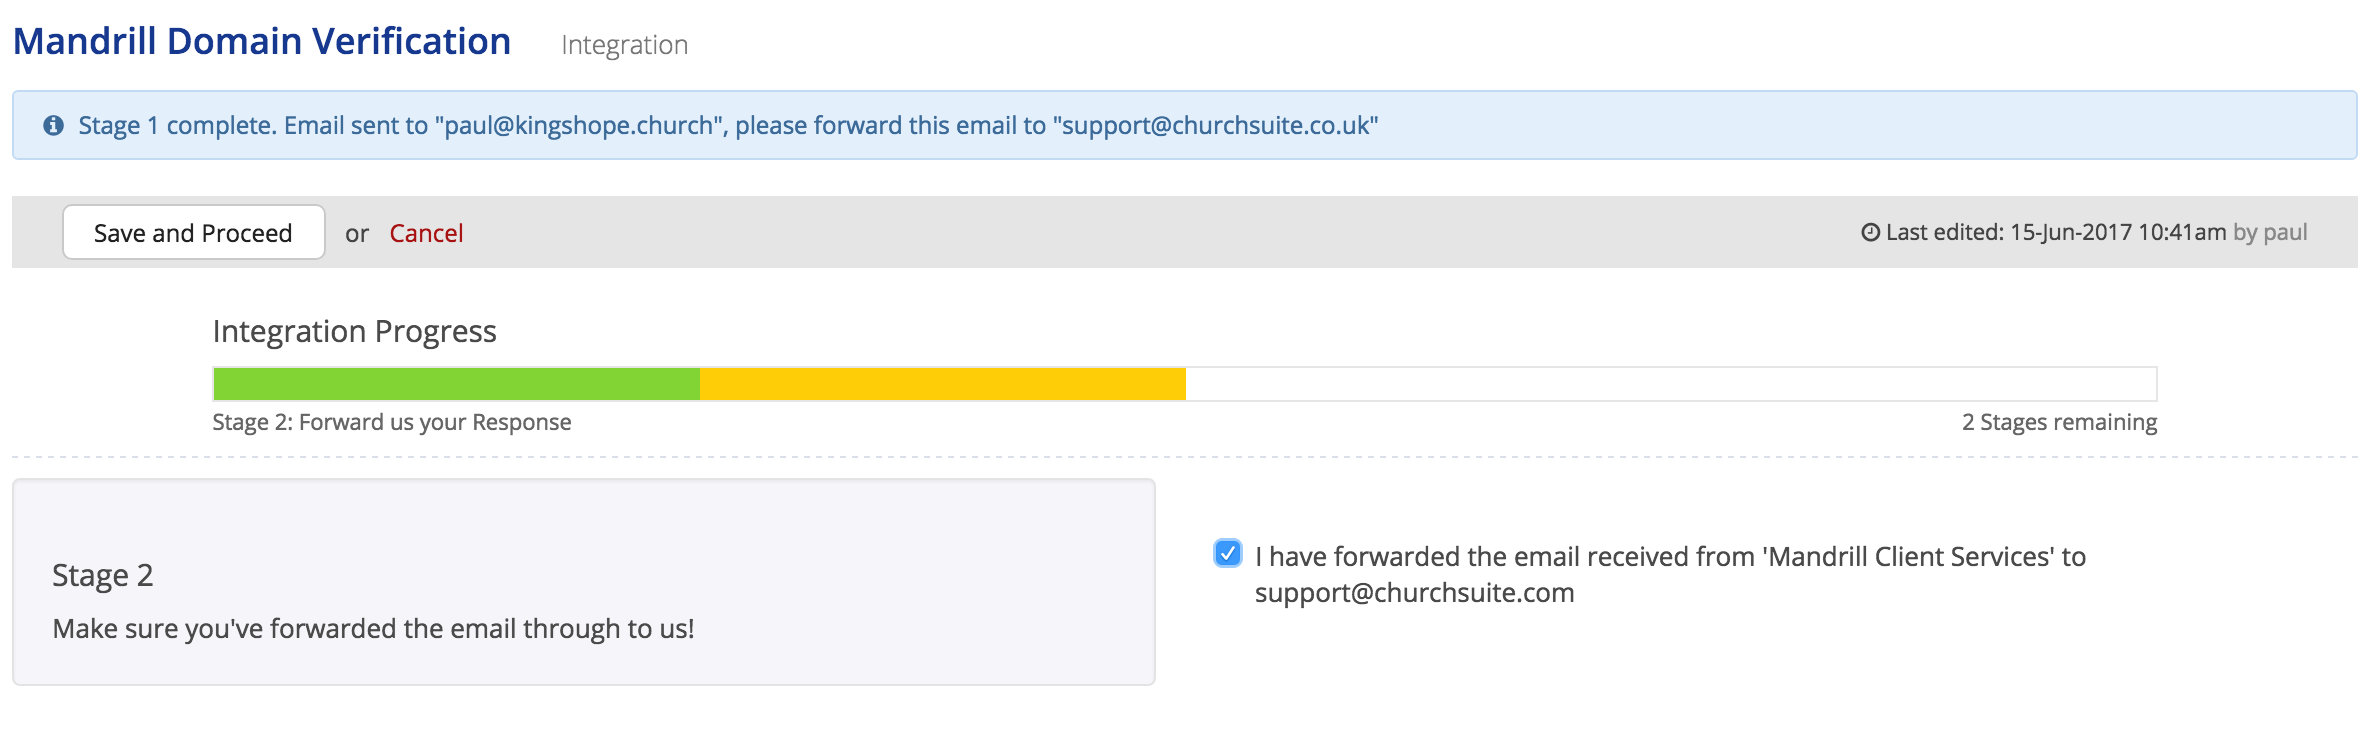 Improving email delivery from your churchsuite account send you a confirmation email back advising that you can proceed to the final stage now you can tick the box in stage 2 and click save and proceed buycottarizona Images